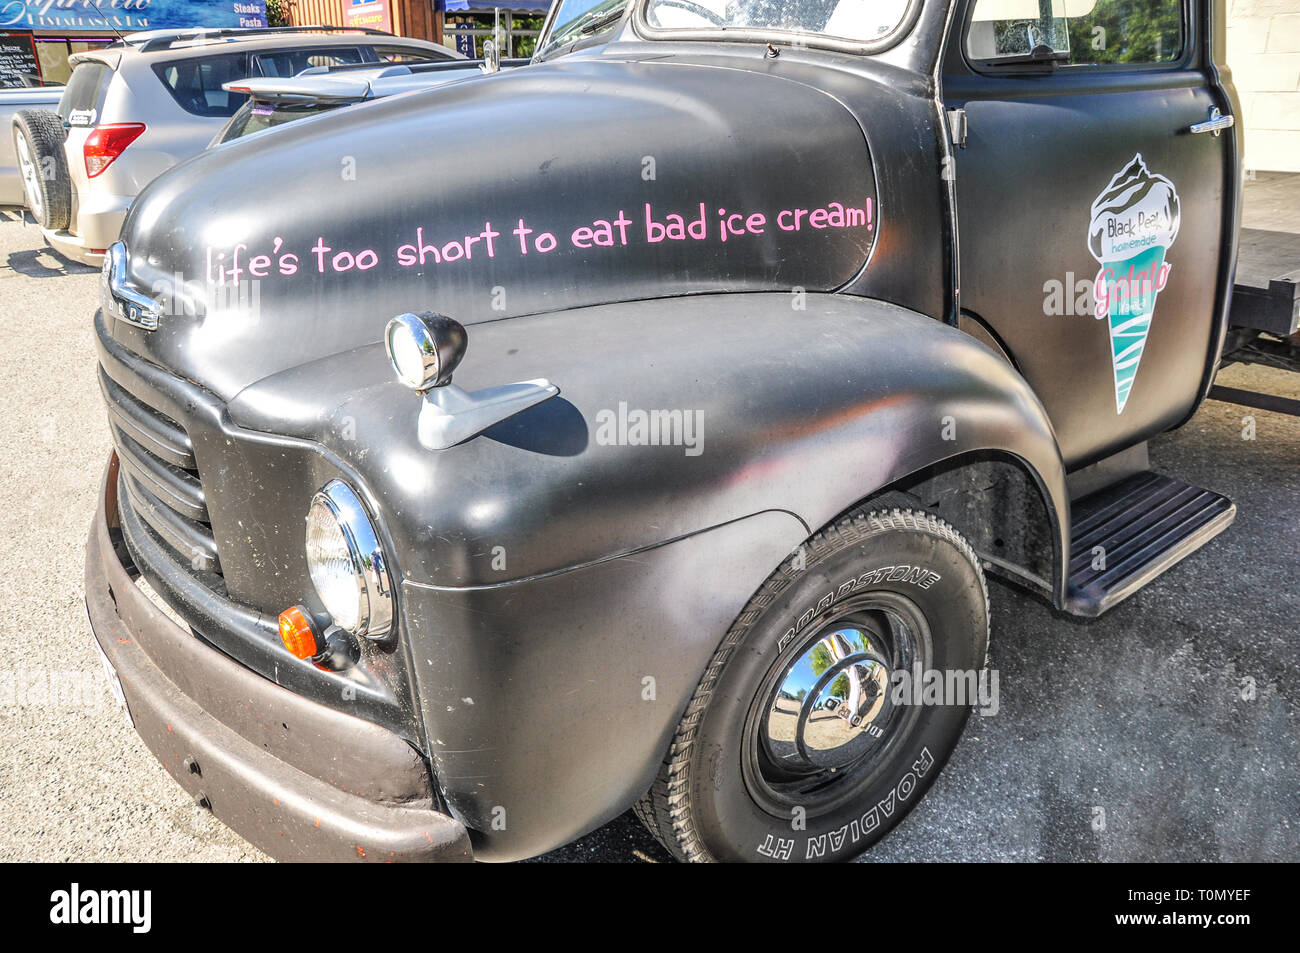 Vintage Classic Bedford Truck Stock Photos & Vintage Classic Bedford